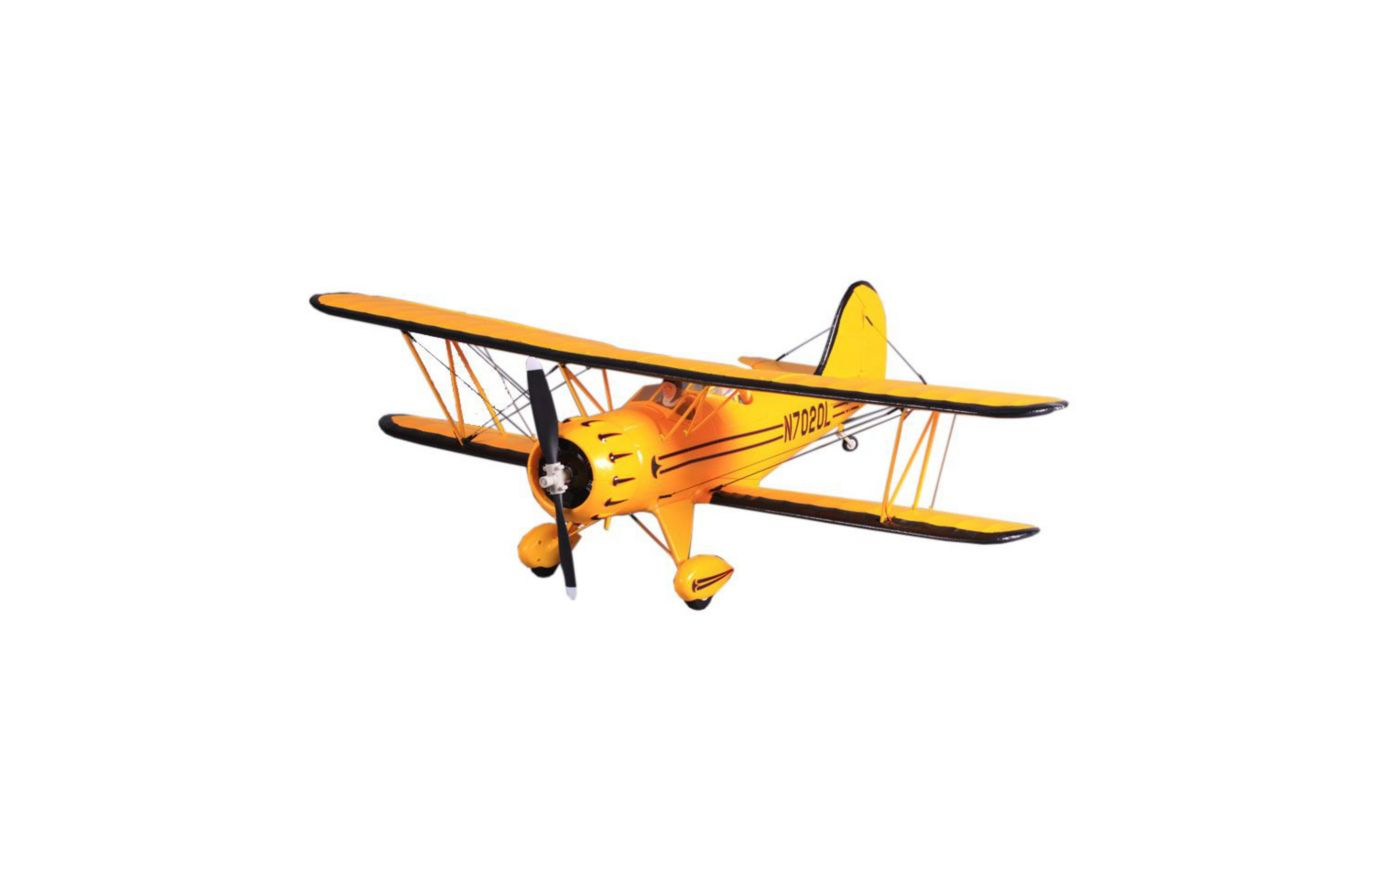 Image for Waco Yellow PNP, 1100mm from Force RC